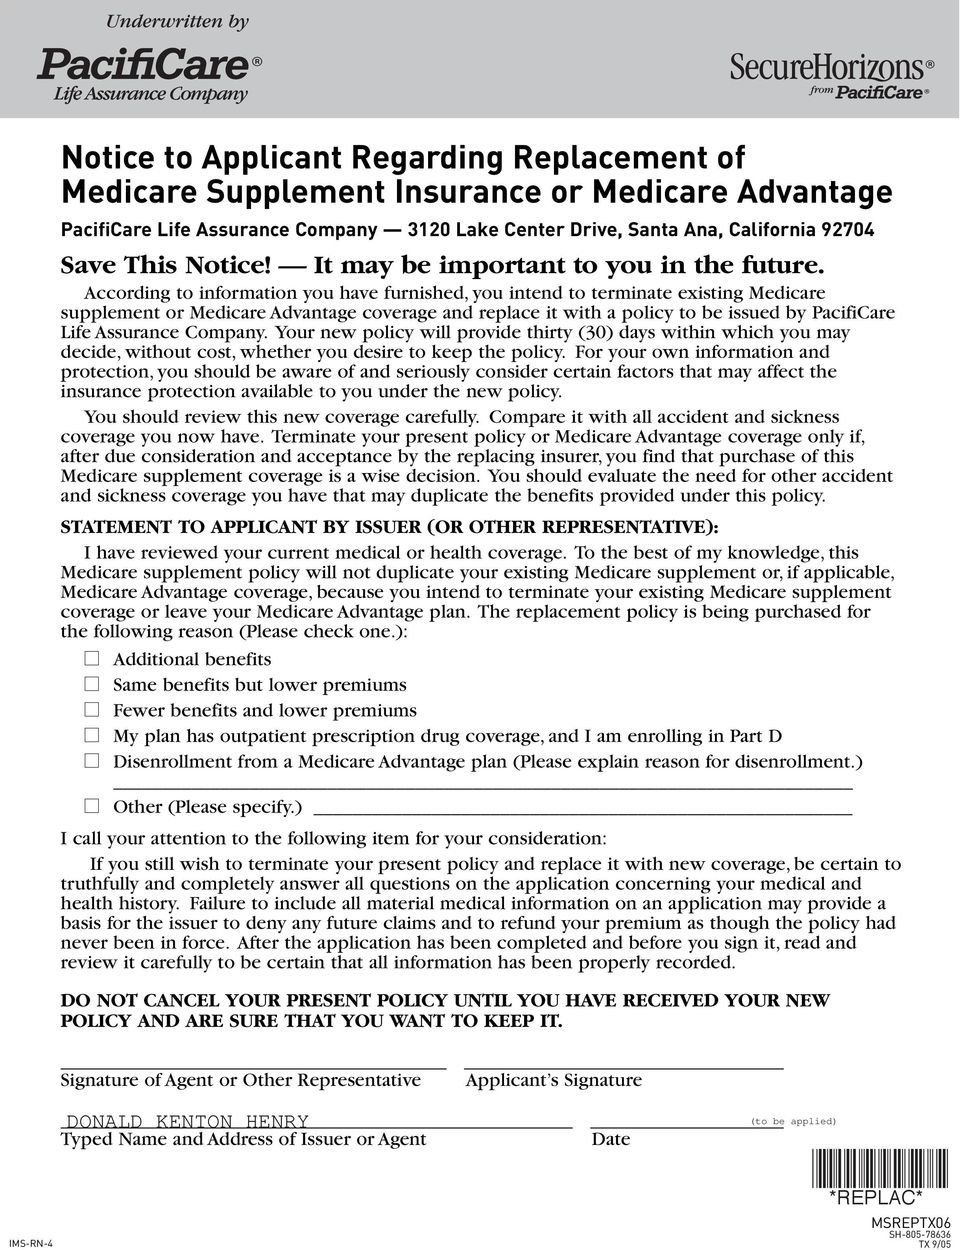 According to information you have furnished, you intend to terminate existing Medicare supplement or Medicare Advantage coverage and replace it with a policy to be issued by PacifiCare Life Assurance